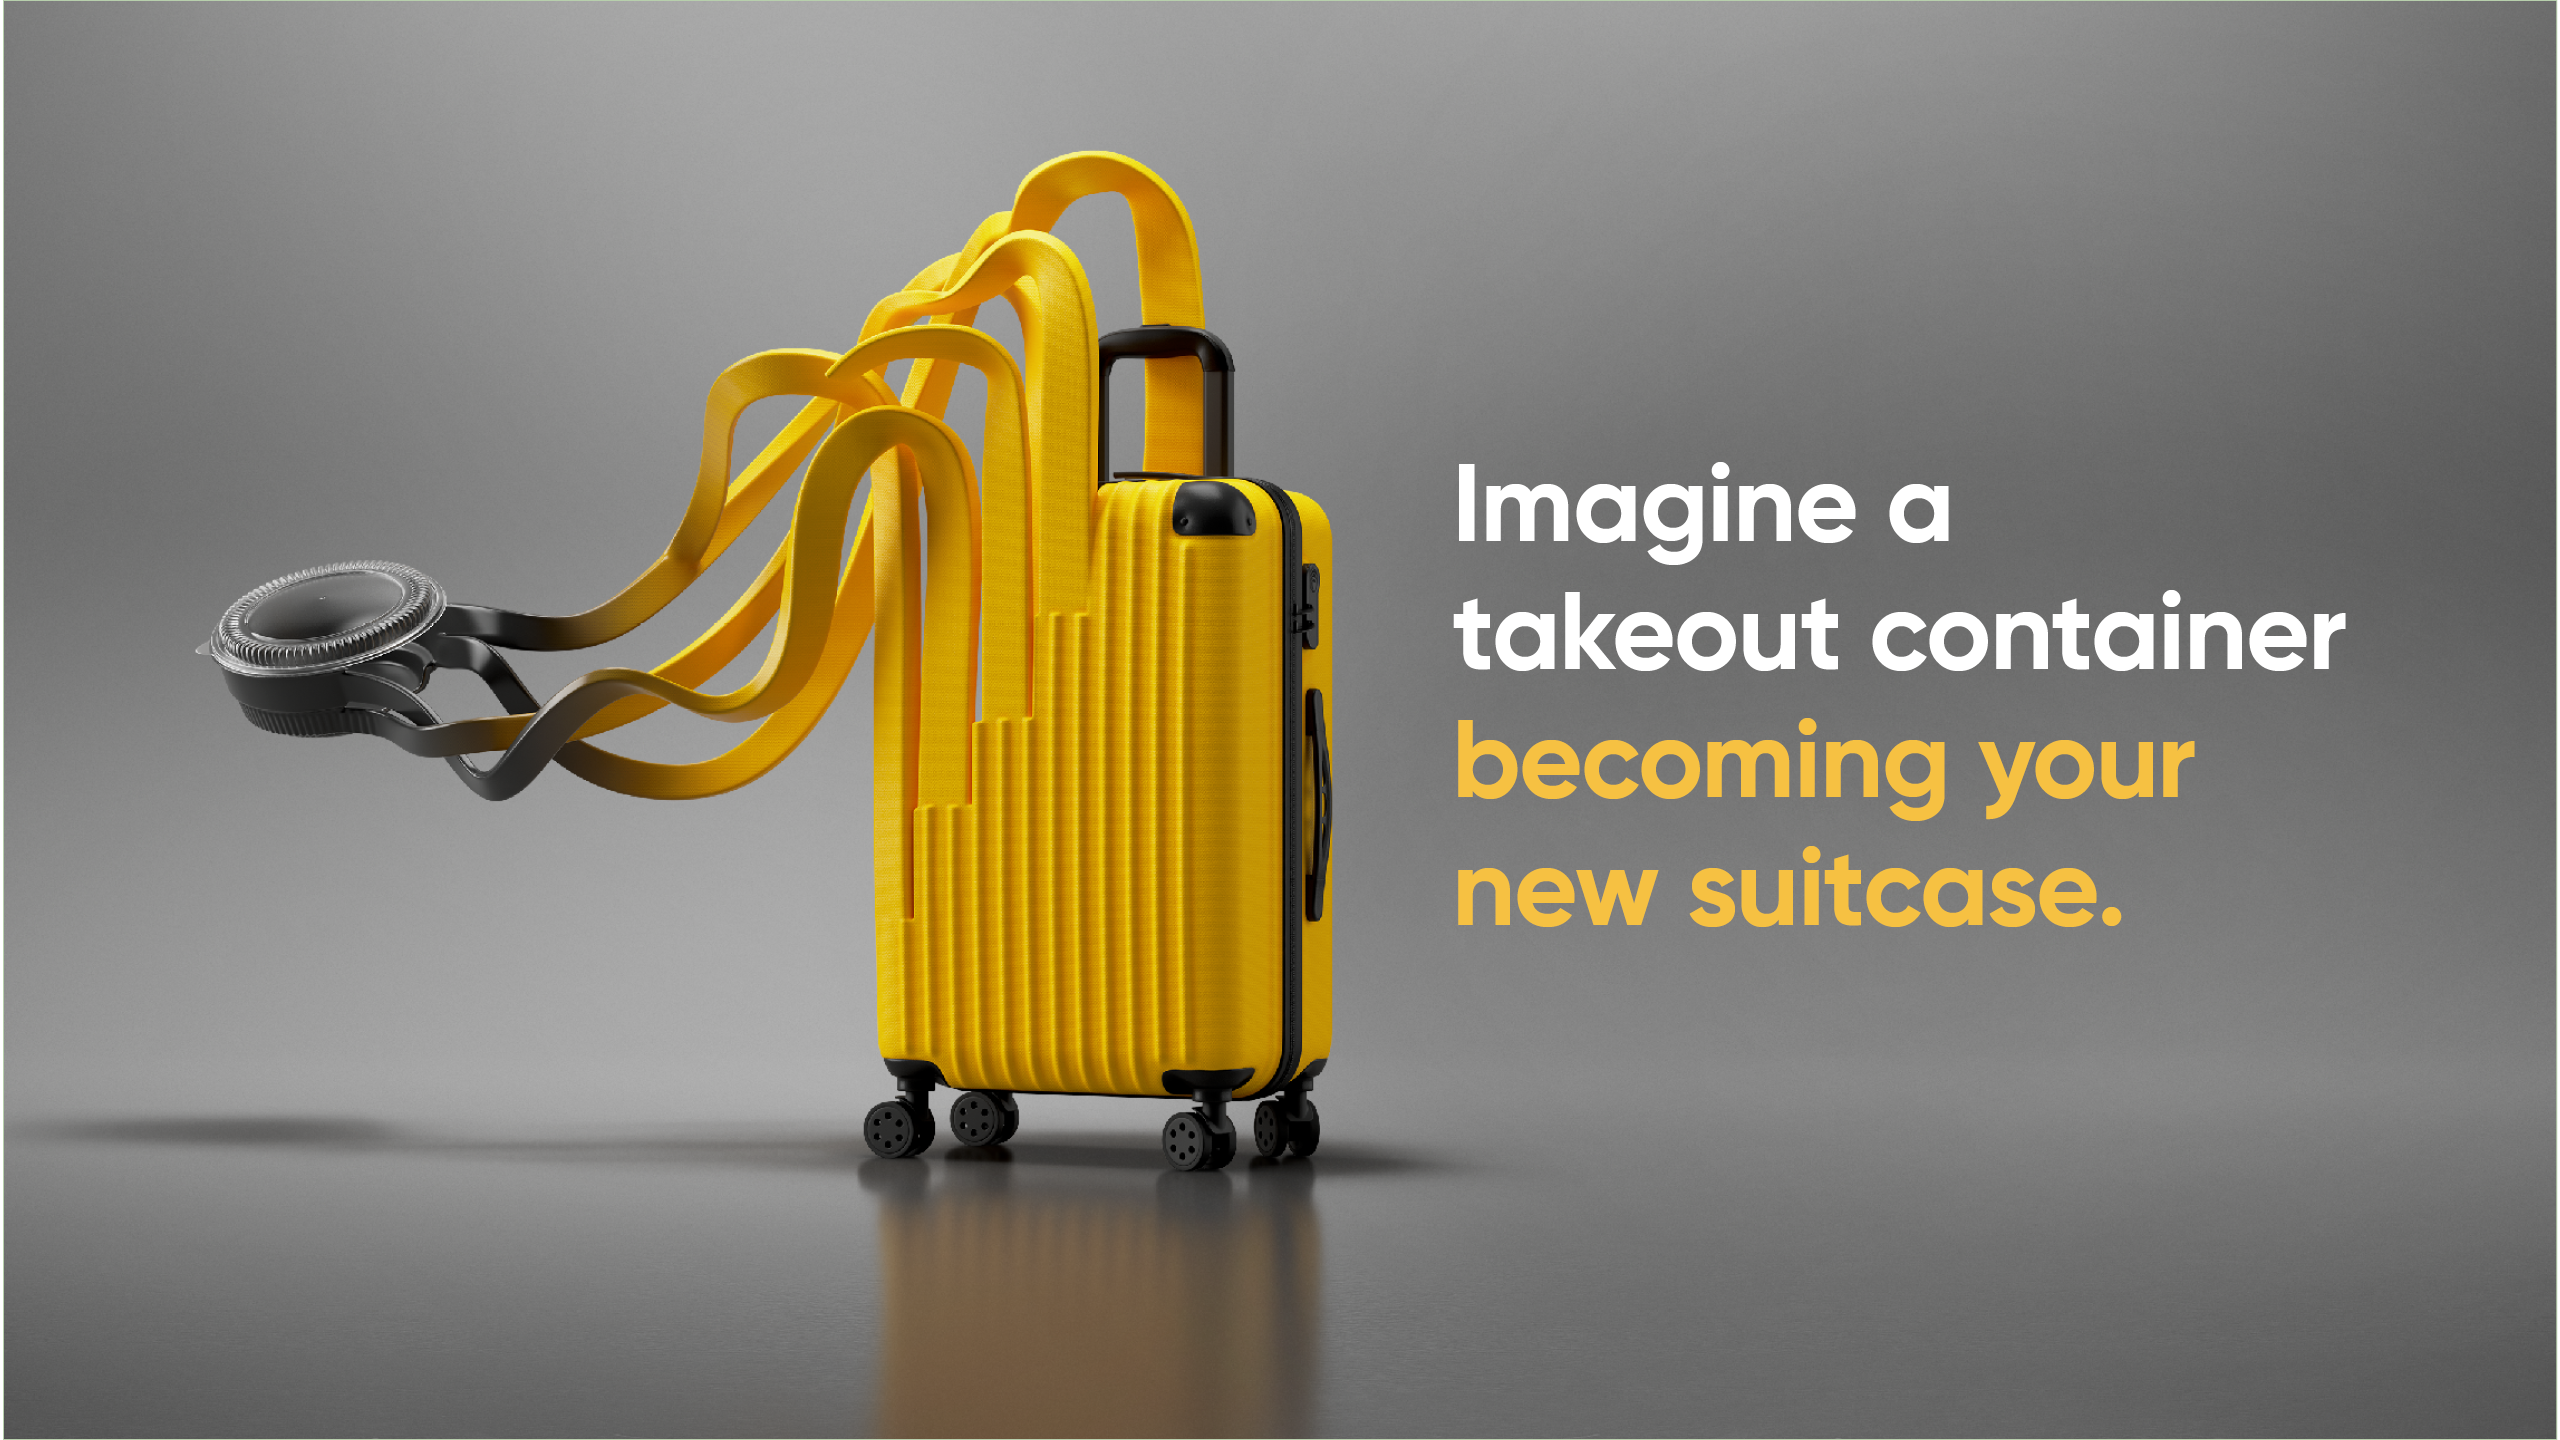 imagine a takeout container becoming your new suitcase.